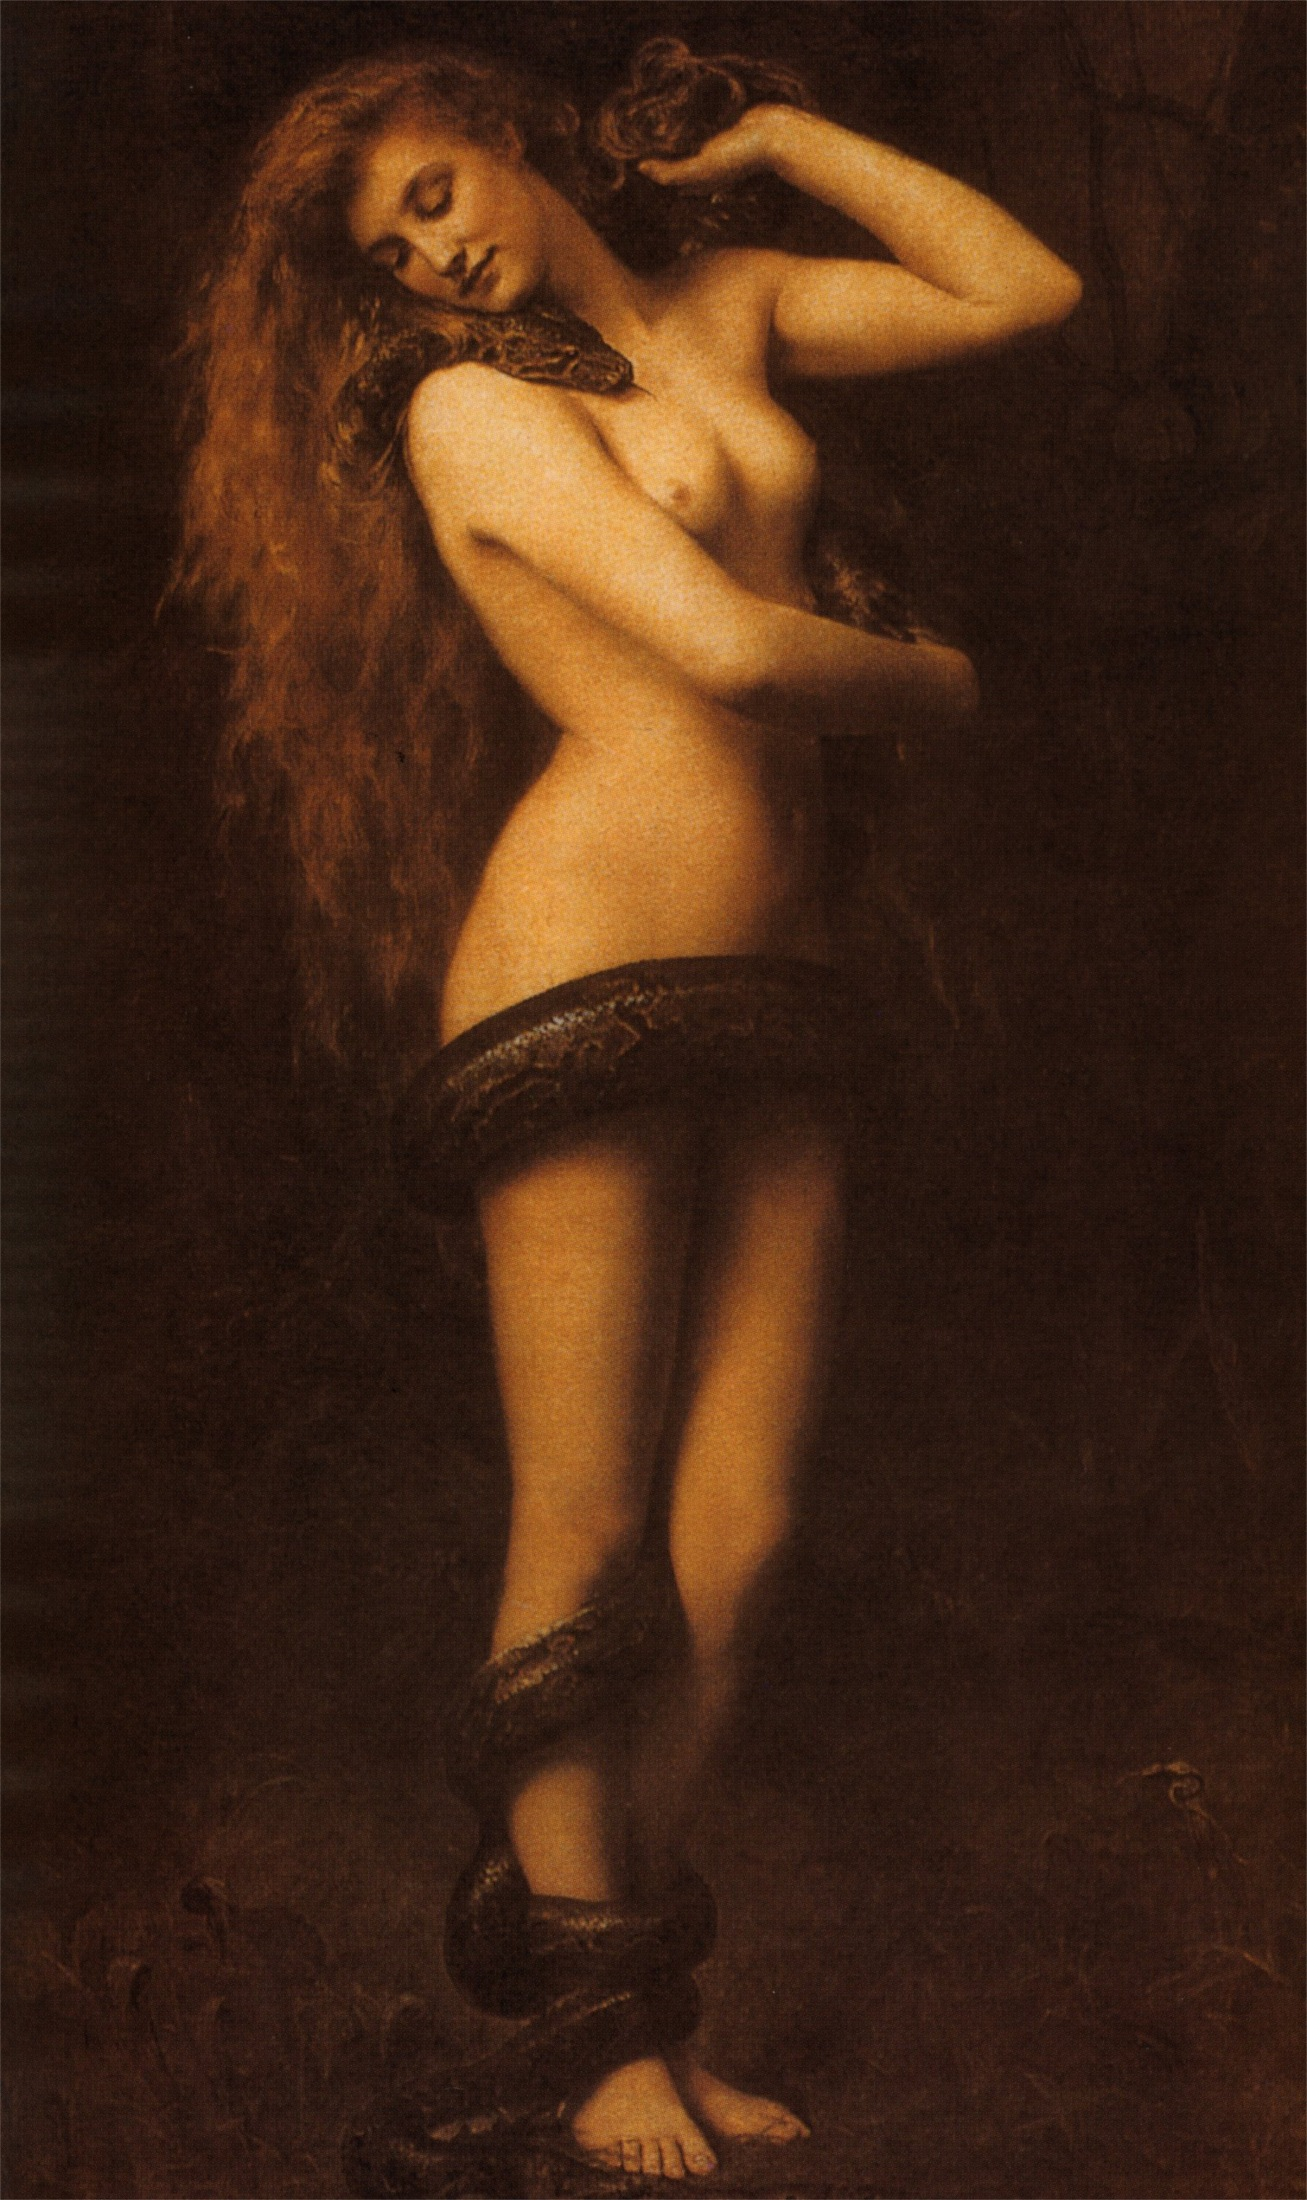 John Collier: Lilith (1892)